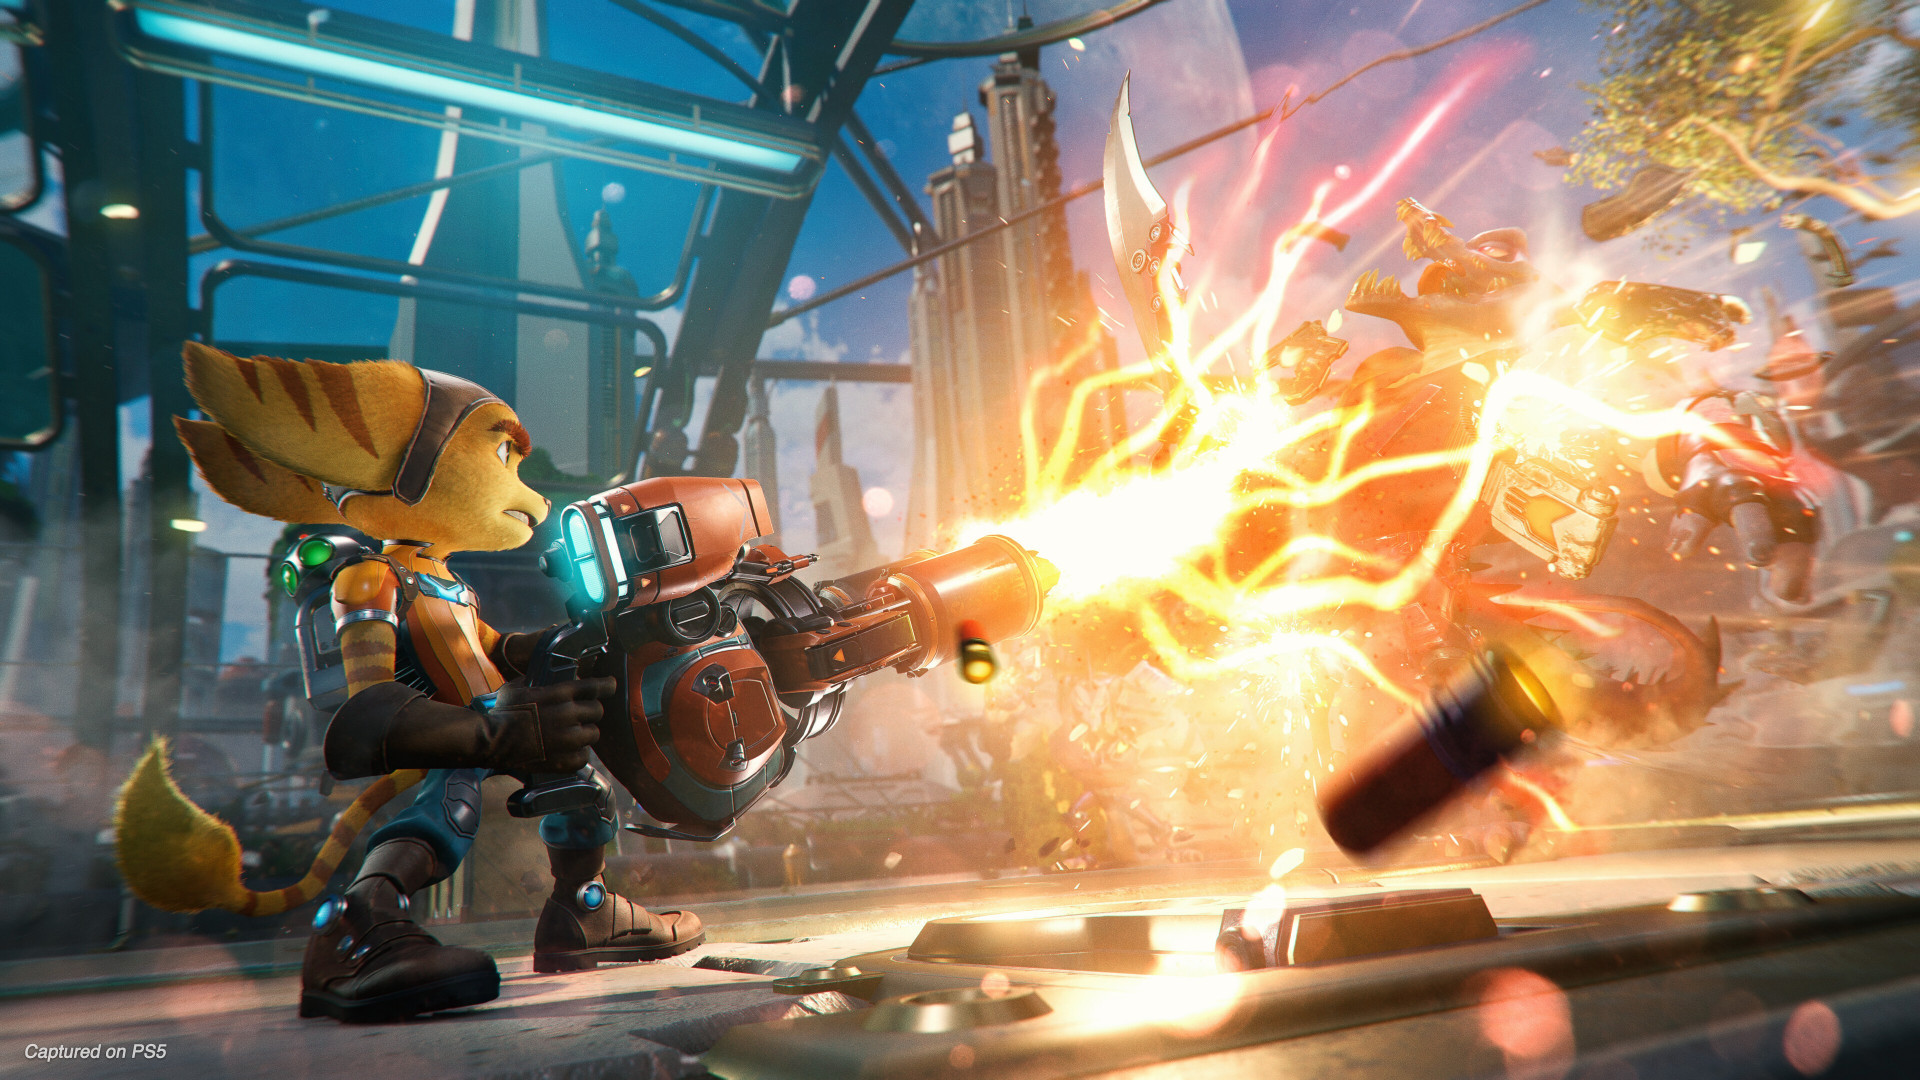 Download wallpaper: Ratchet and Clank: Rift Apart 1920x1080